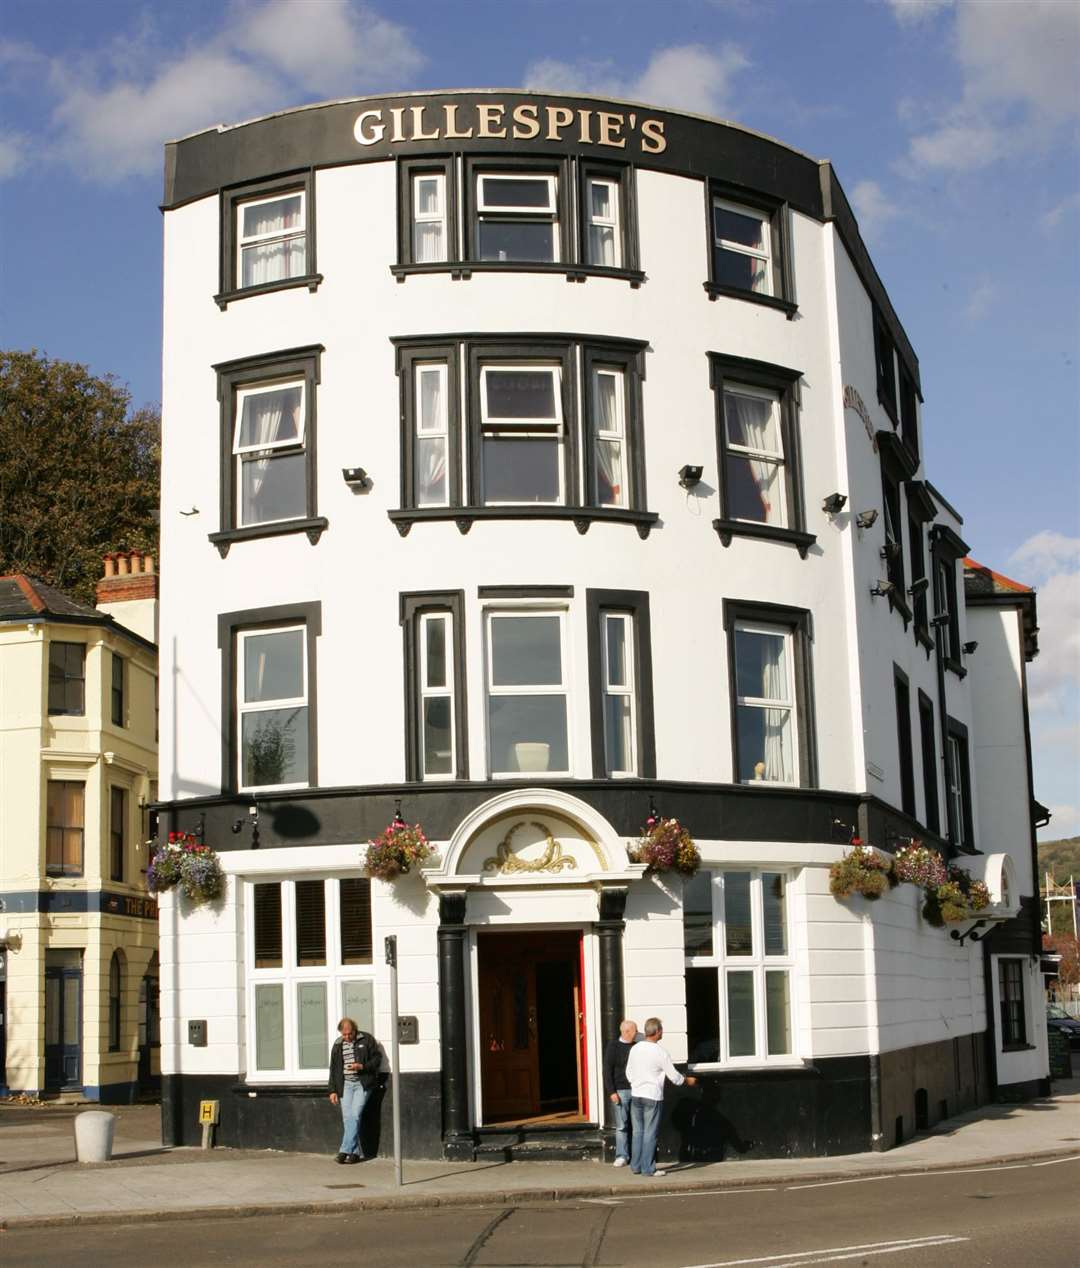 The attack took place at Gillespies bar in Harbour Street, Folkestone